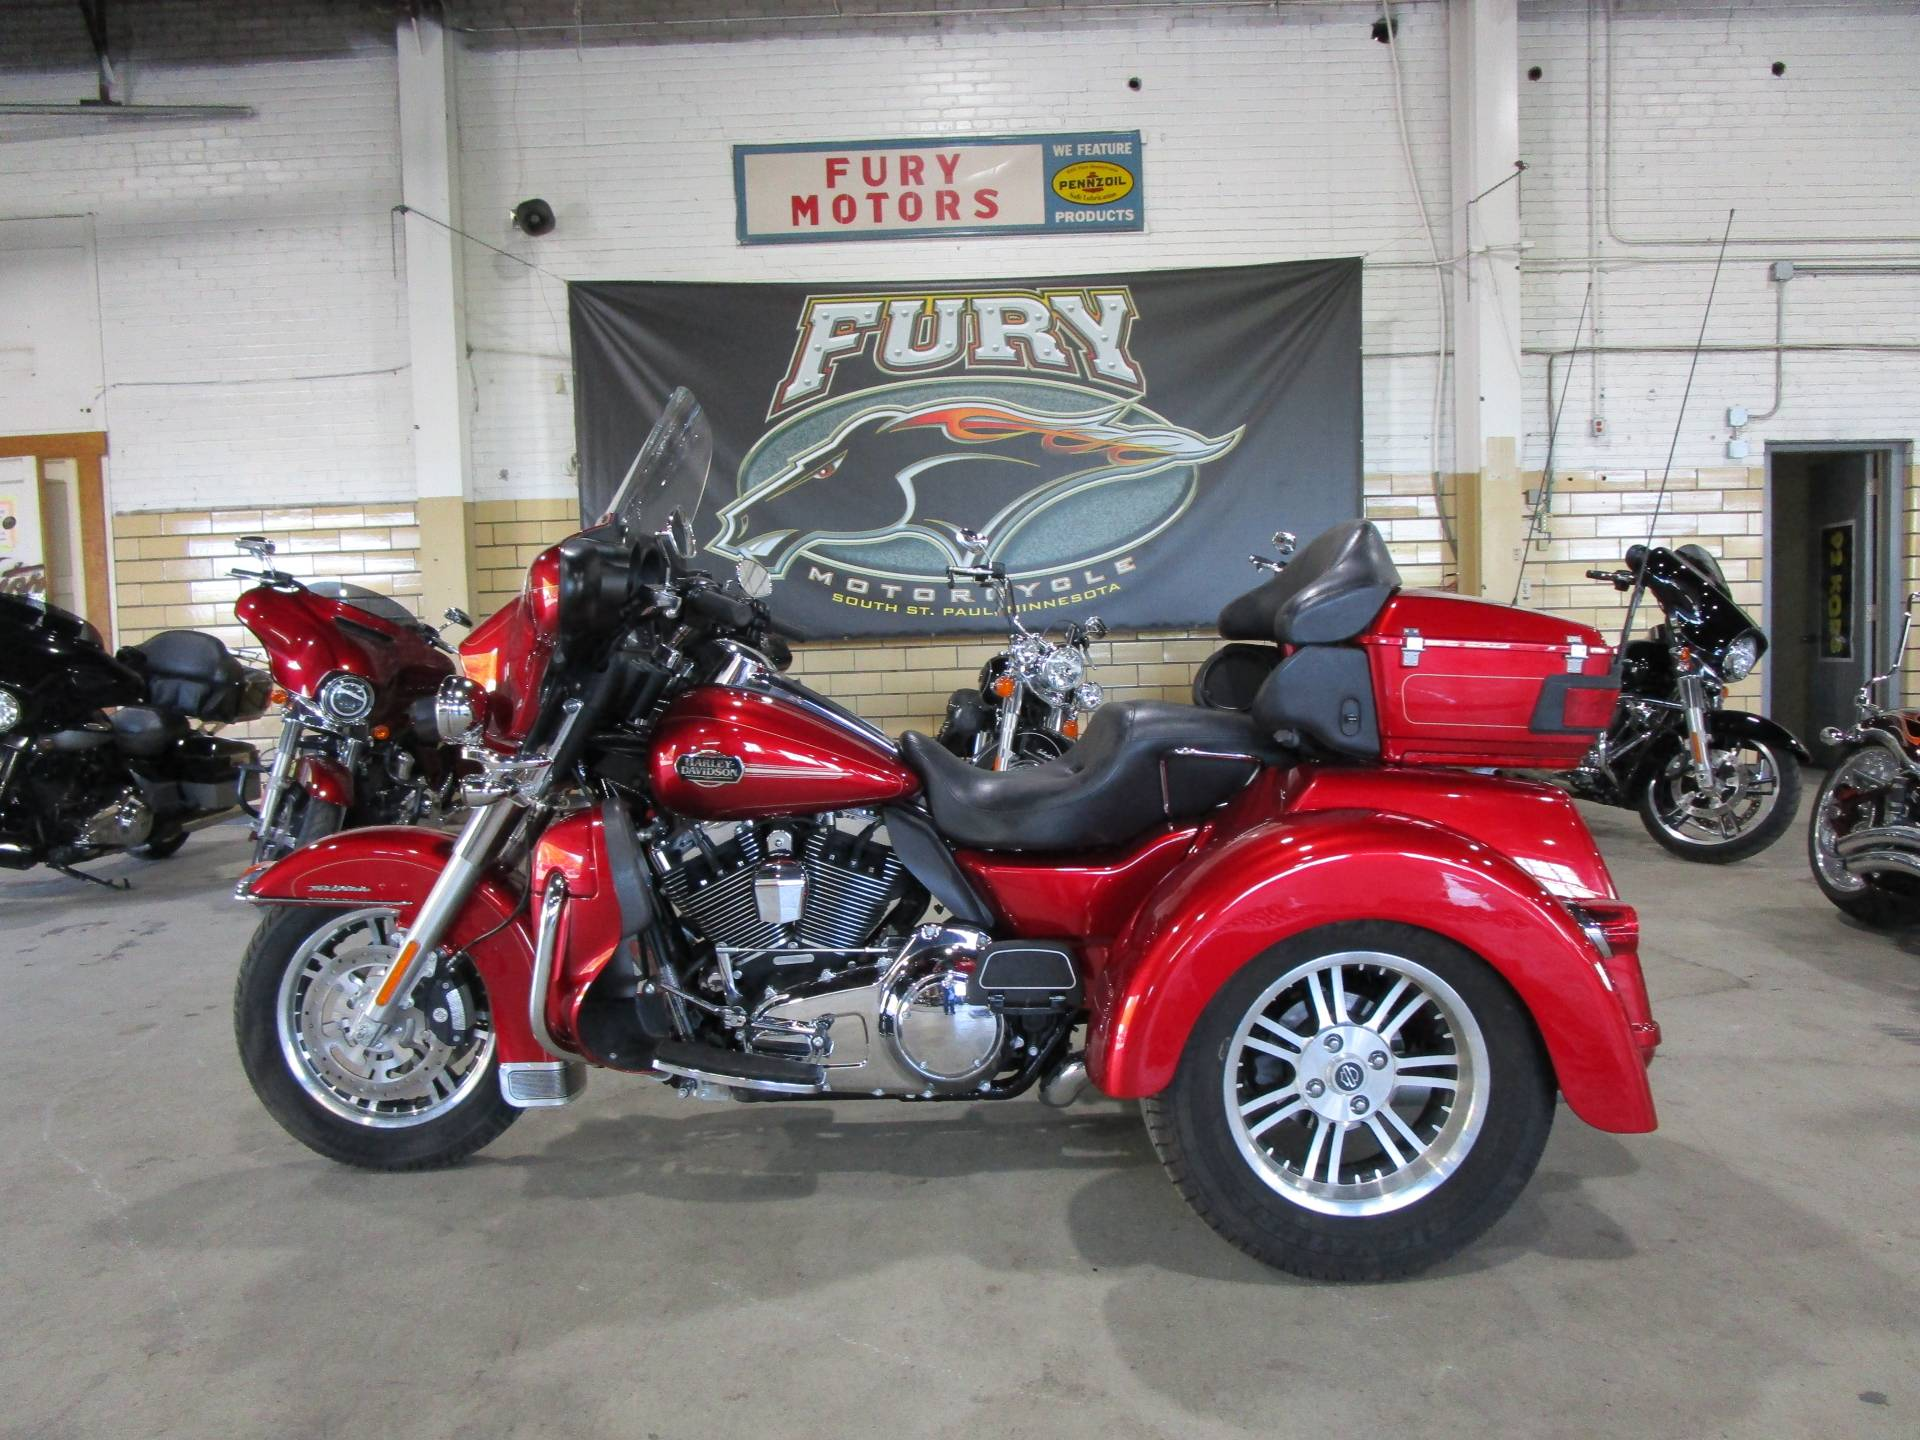 2013 Harley-Davidson FLHTCUTG TRI GLIDE in South Saint Paul, Minnesota - Photo 7